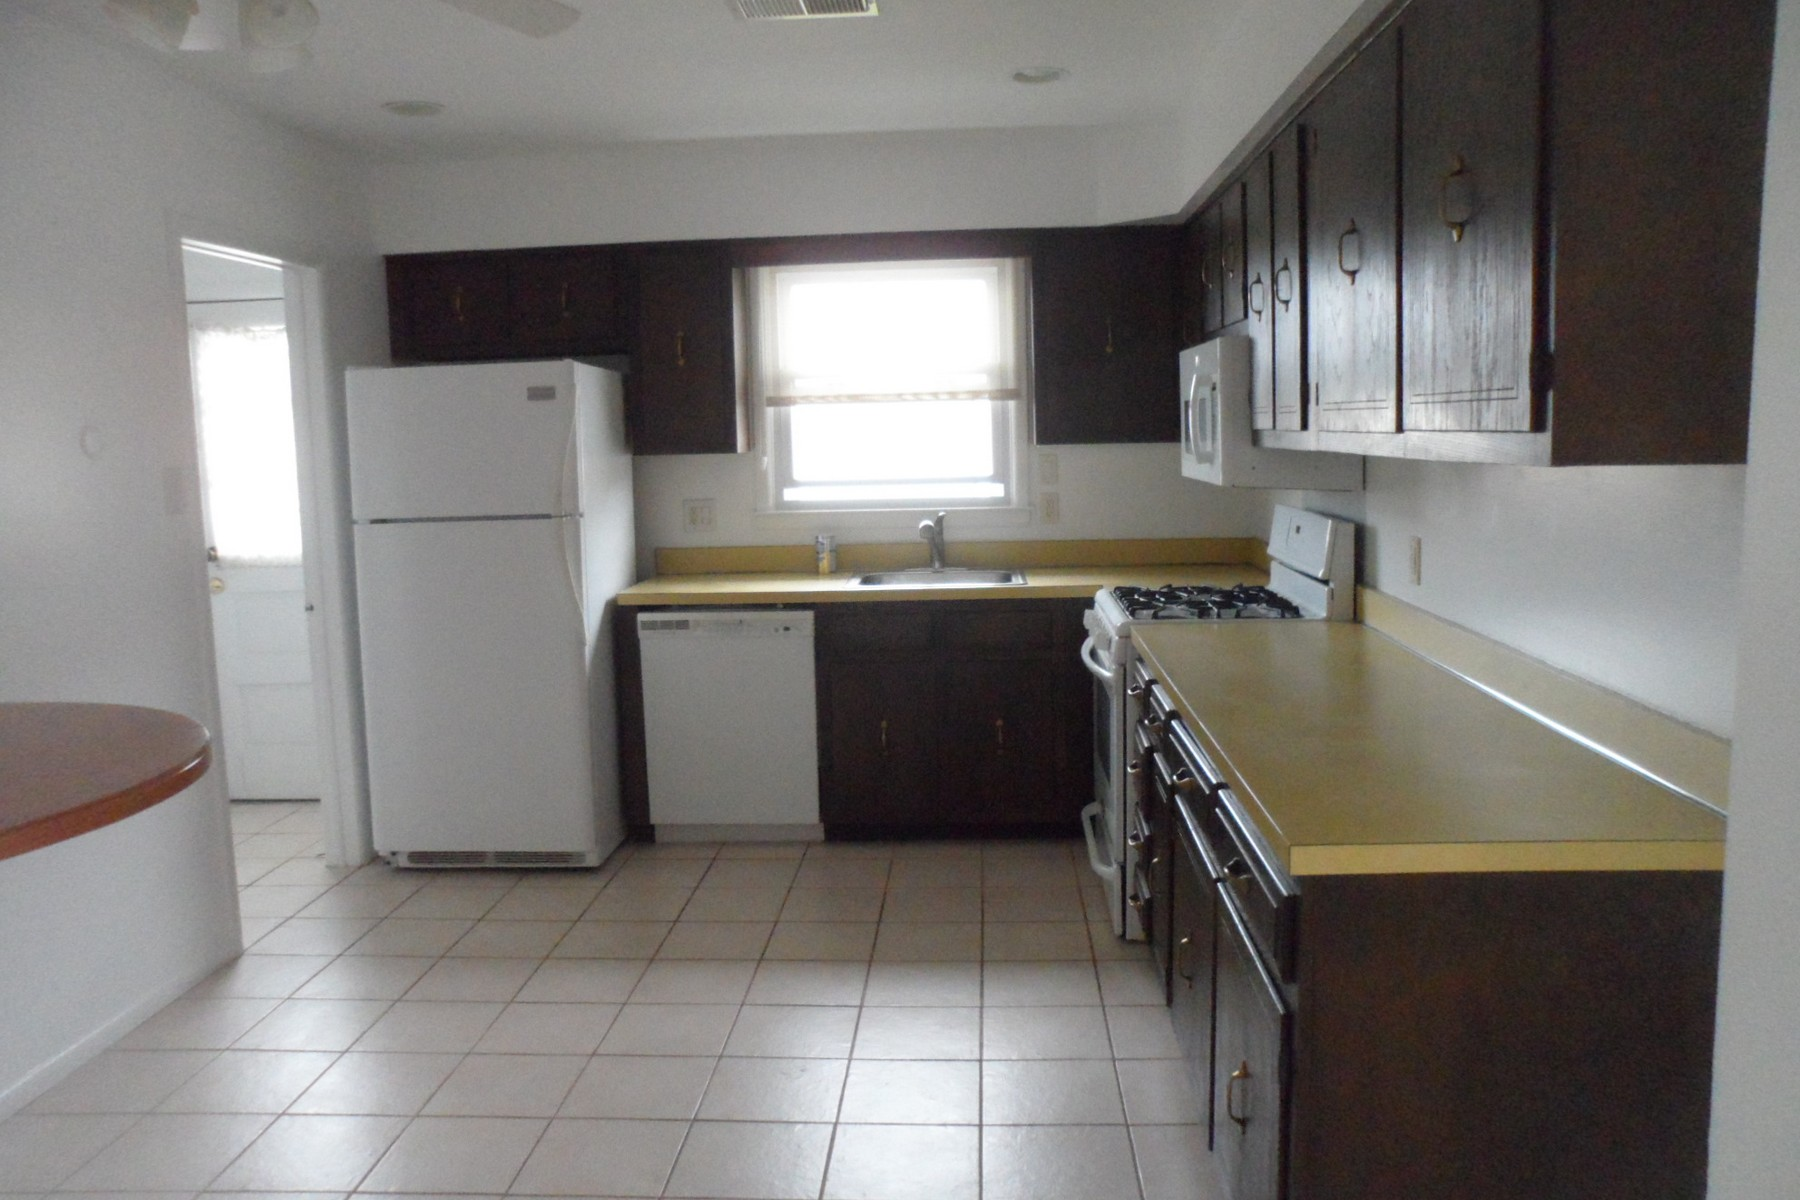 Additional photo for property listing at 447 Berkshire Drive  Ventnor, New Jersey 08406 États-Unis